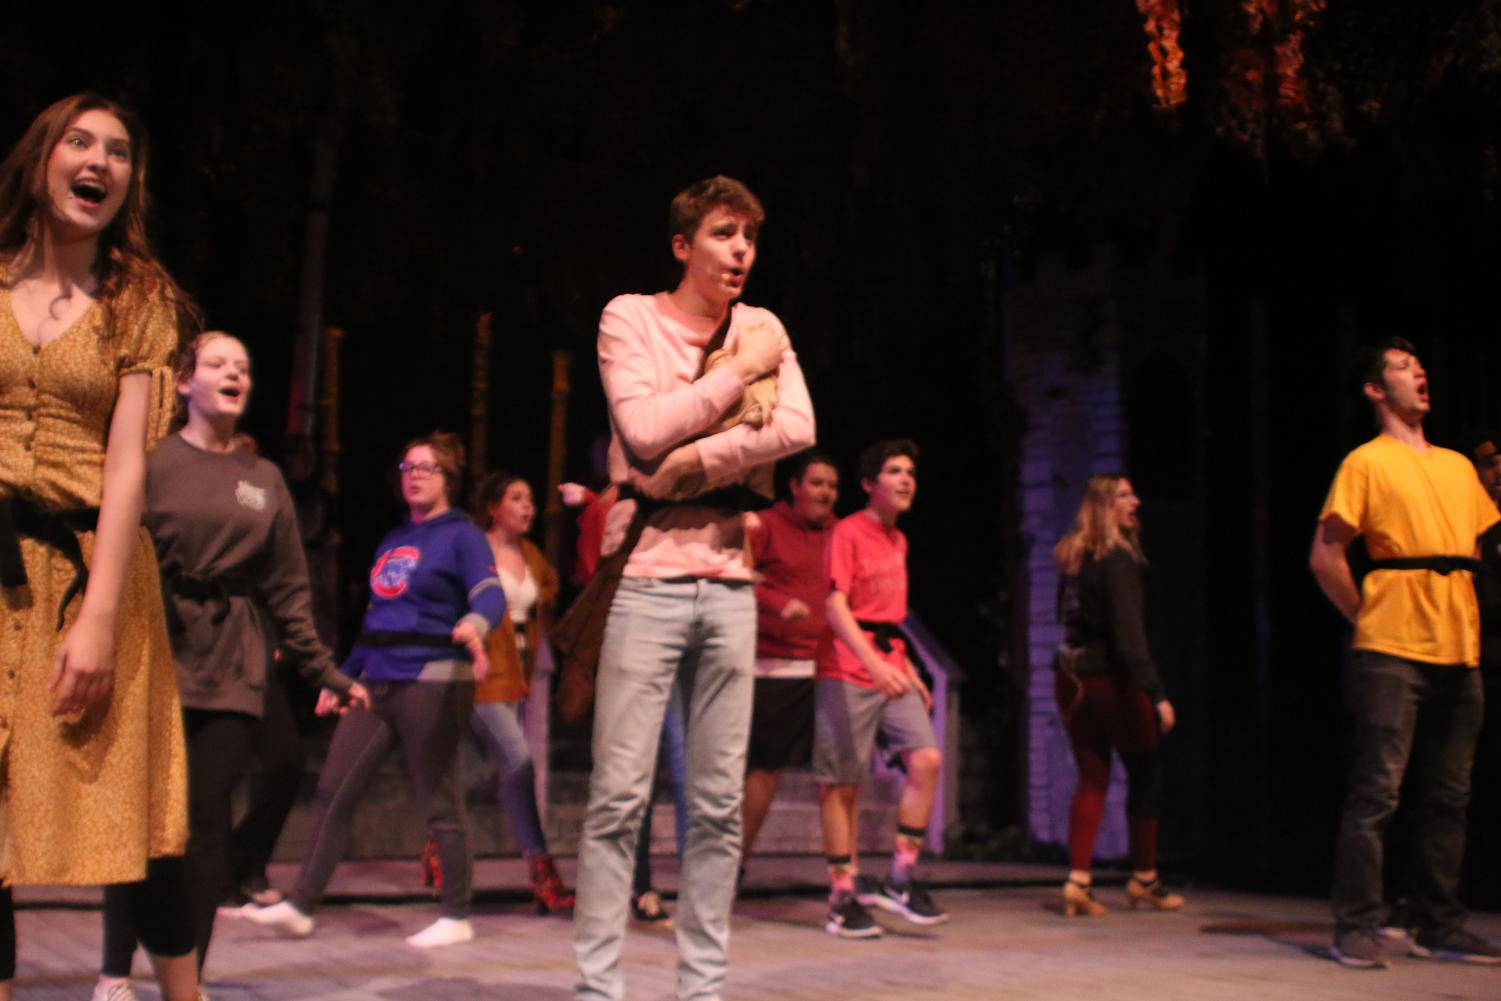 Into the Woods cast running through the musical